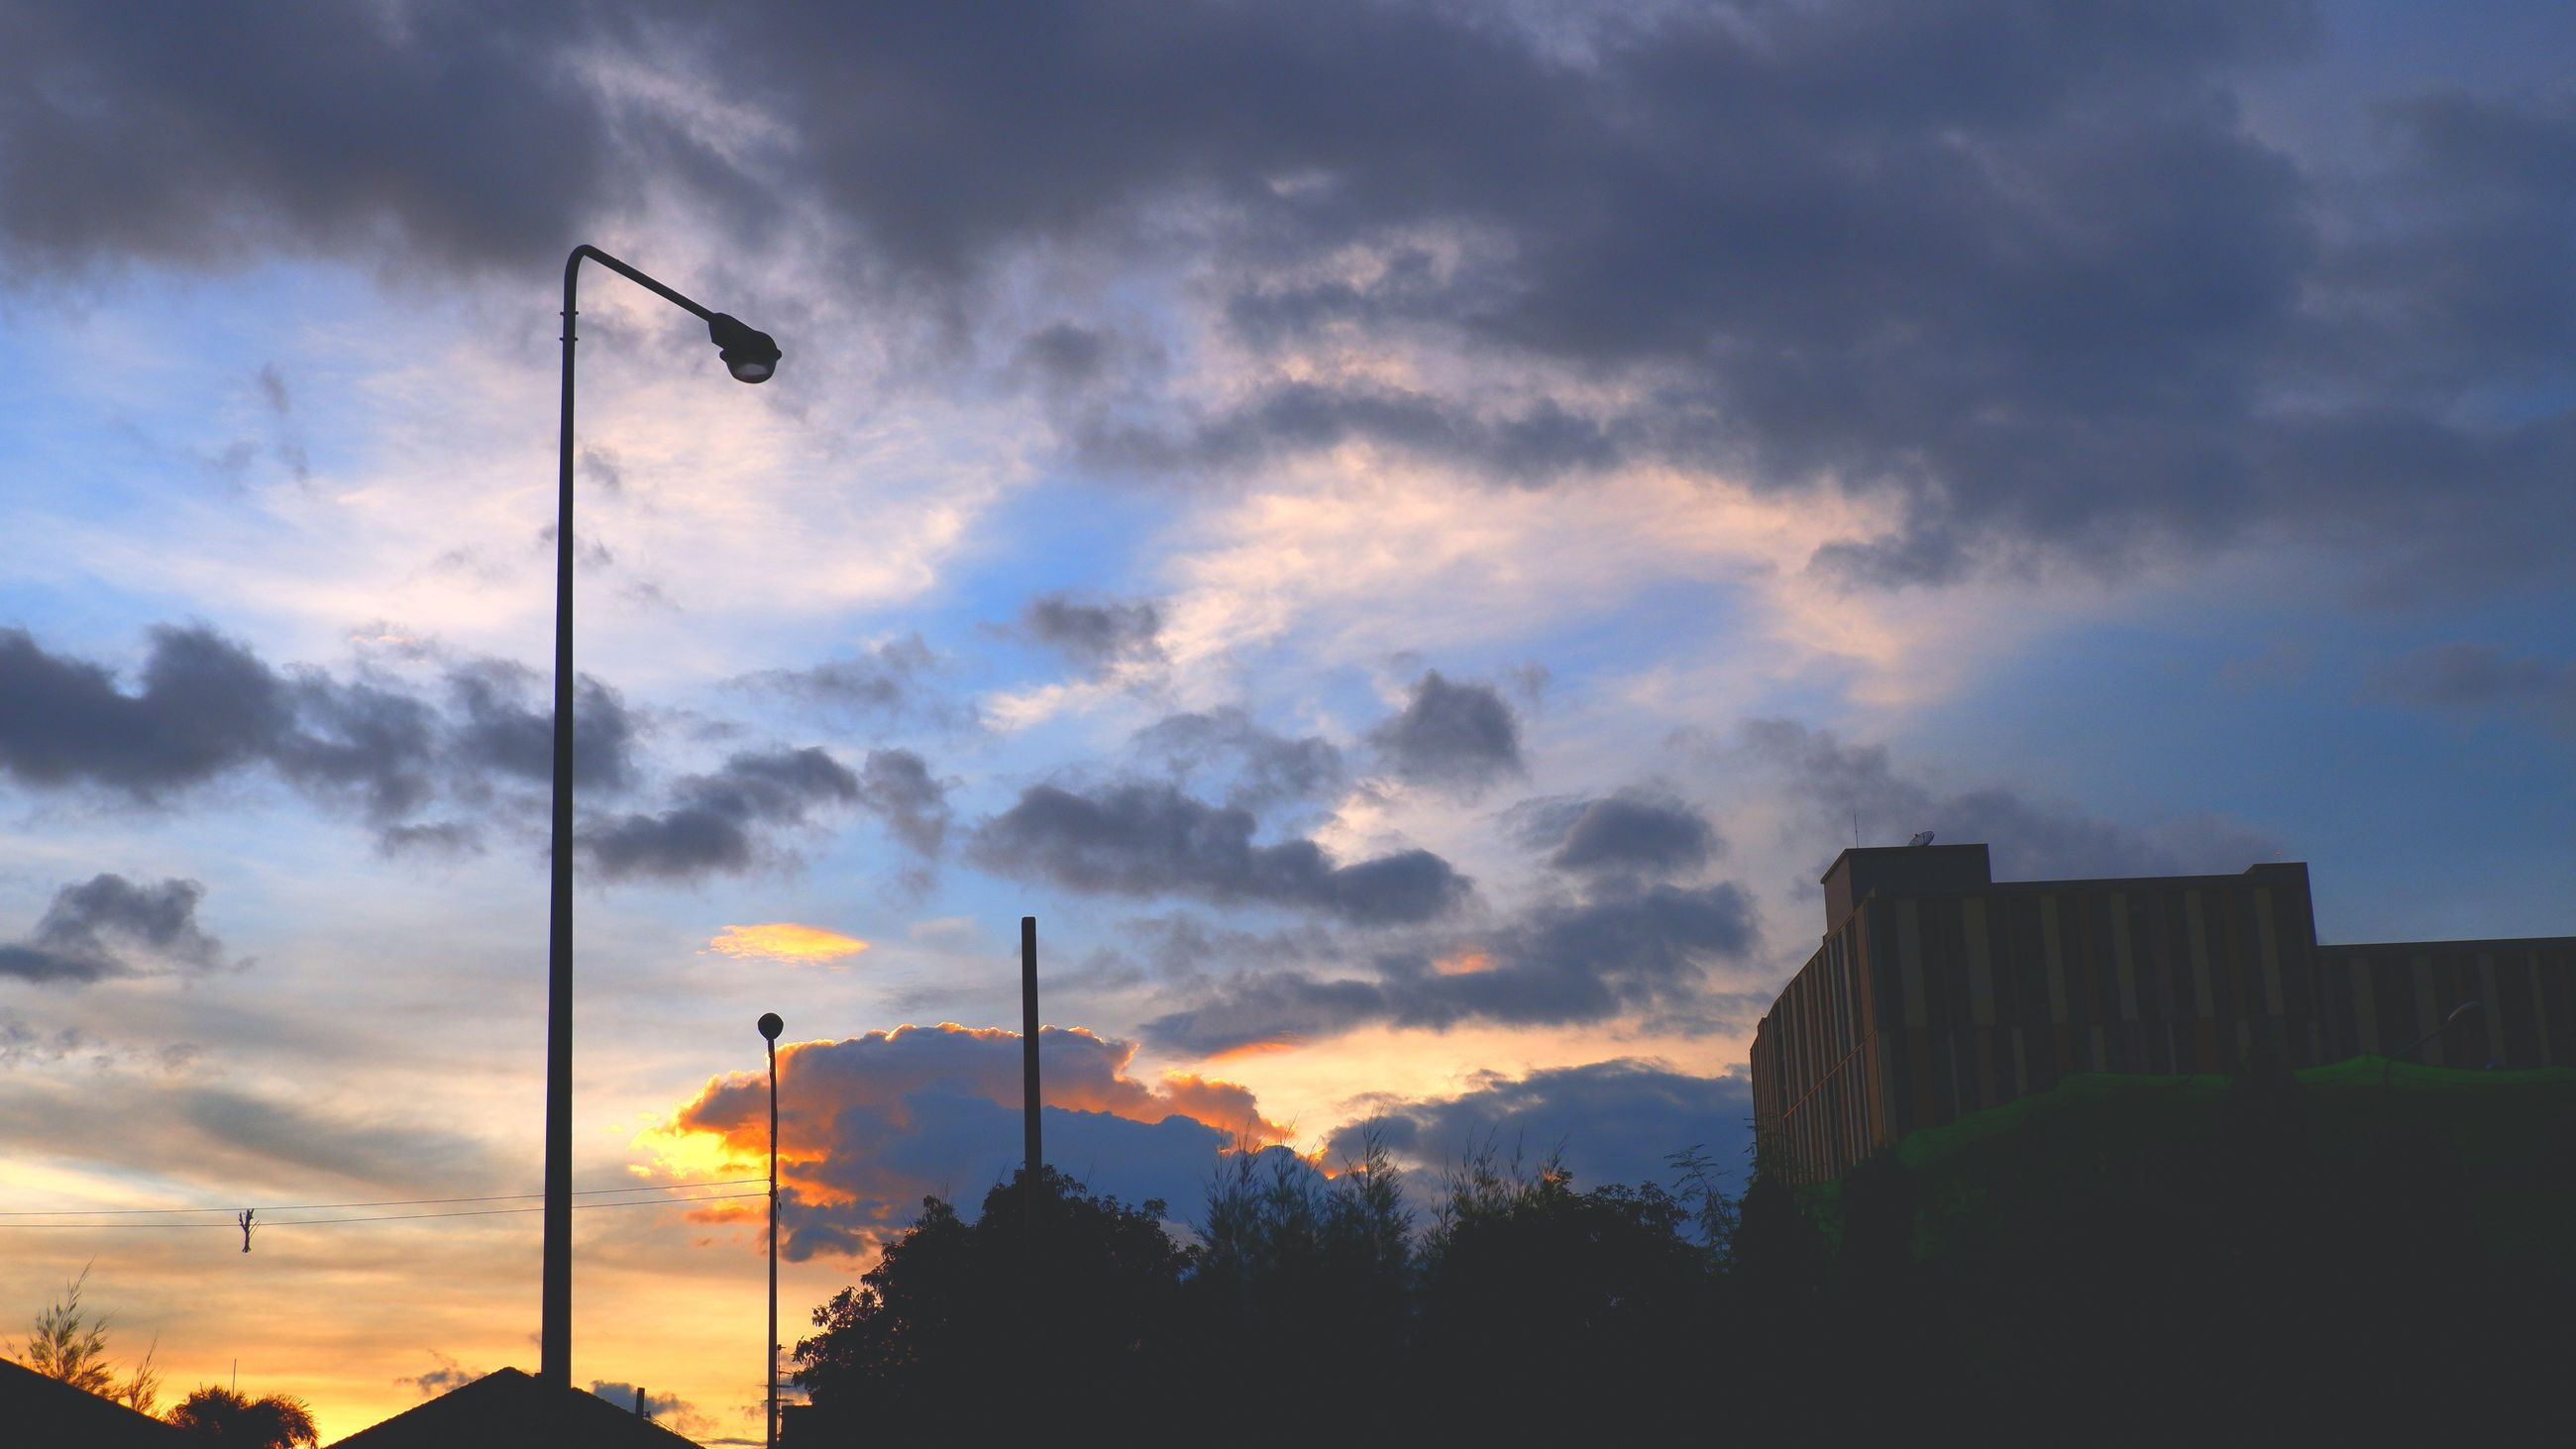 sky, cloud, sunset, dusk, evening, architecture, nature, sunlight, street light, built structure, silhouette, horizon, building exterior, city, afterglow, sun, street, no people, beauty in nature, outdoors, dramatic sky, tree, building, lighting equipment, environment, skyline, scenics - nature, low angle view